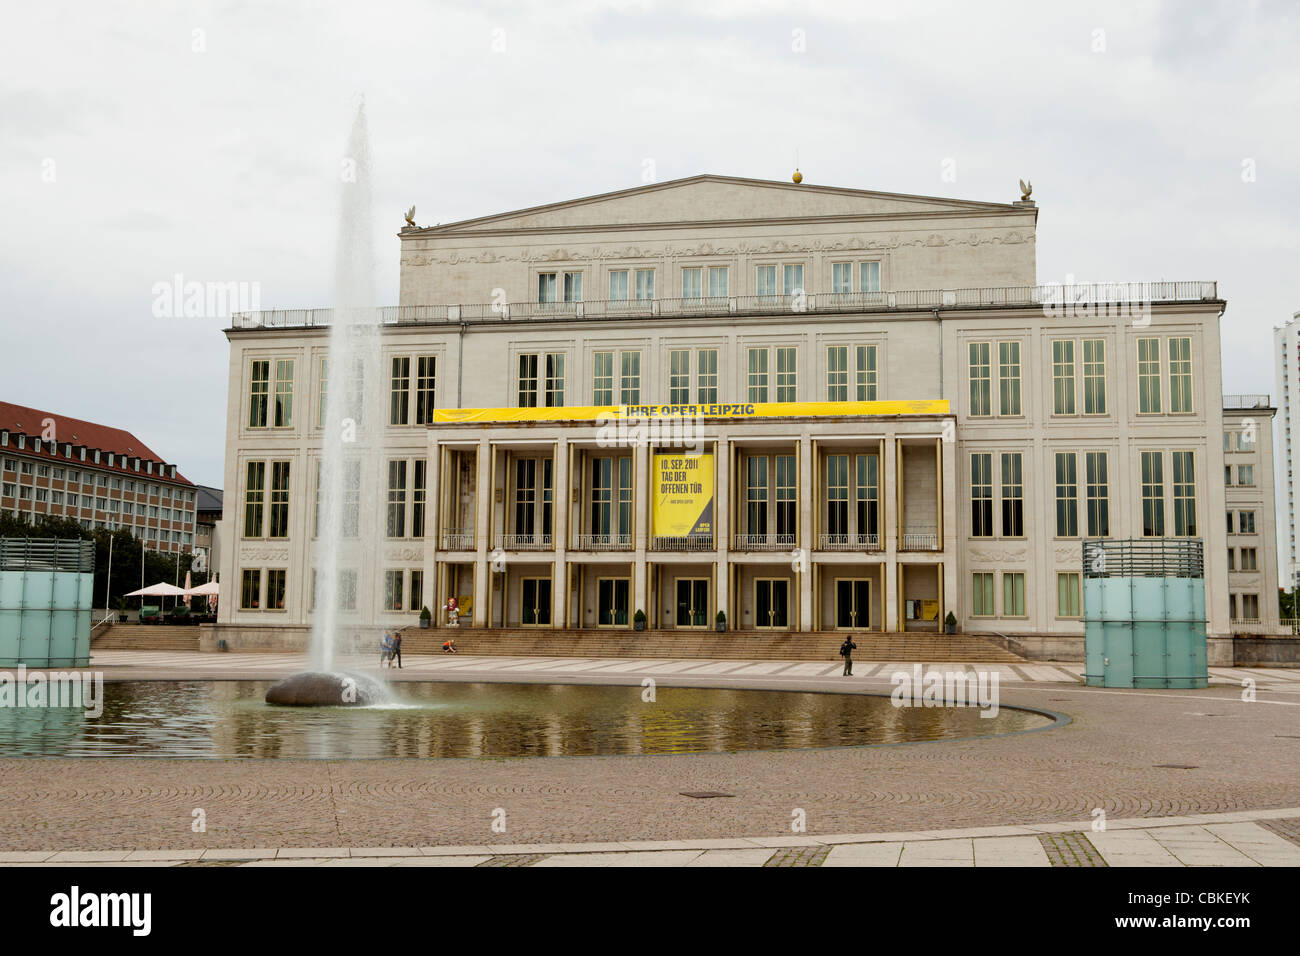 Leipzig Opera House High Resolution Stock Photography And Images Alamy